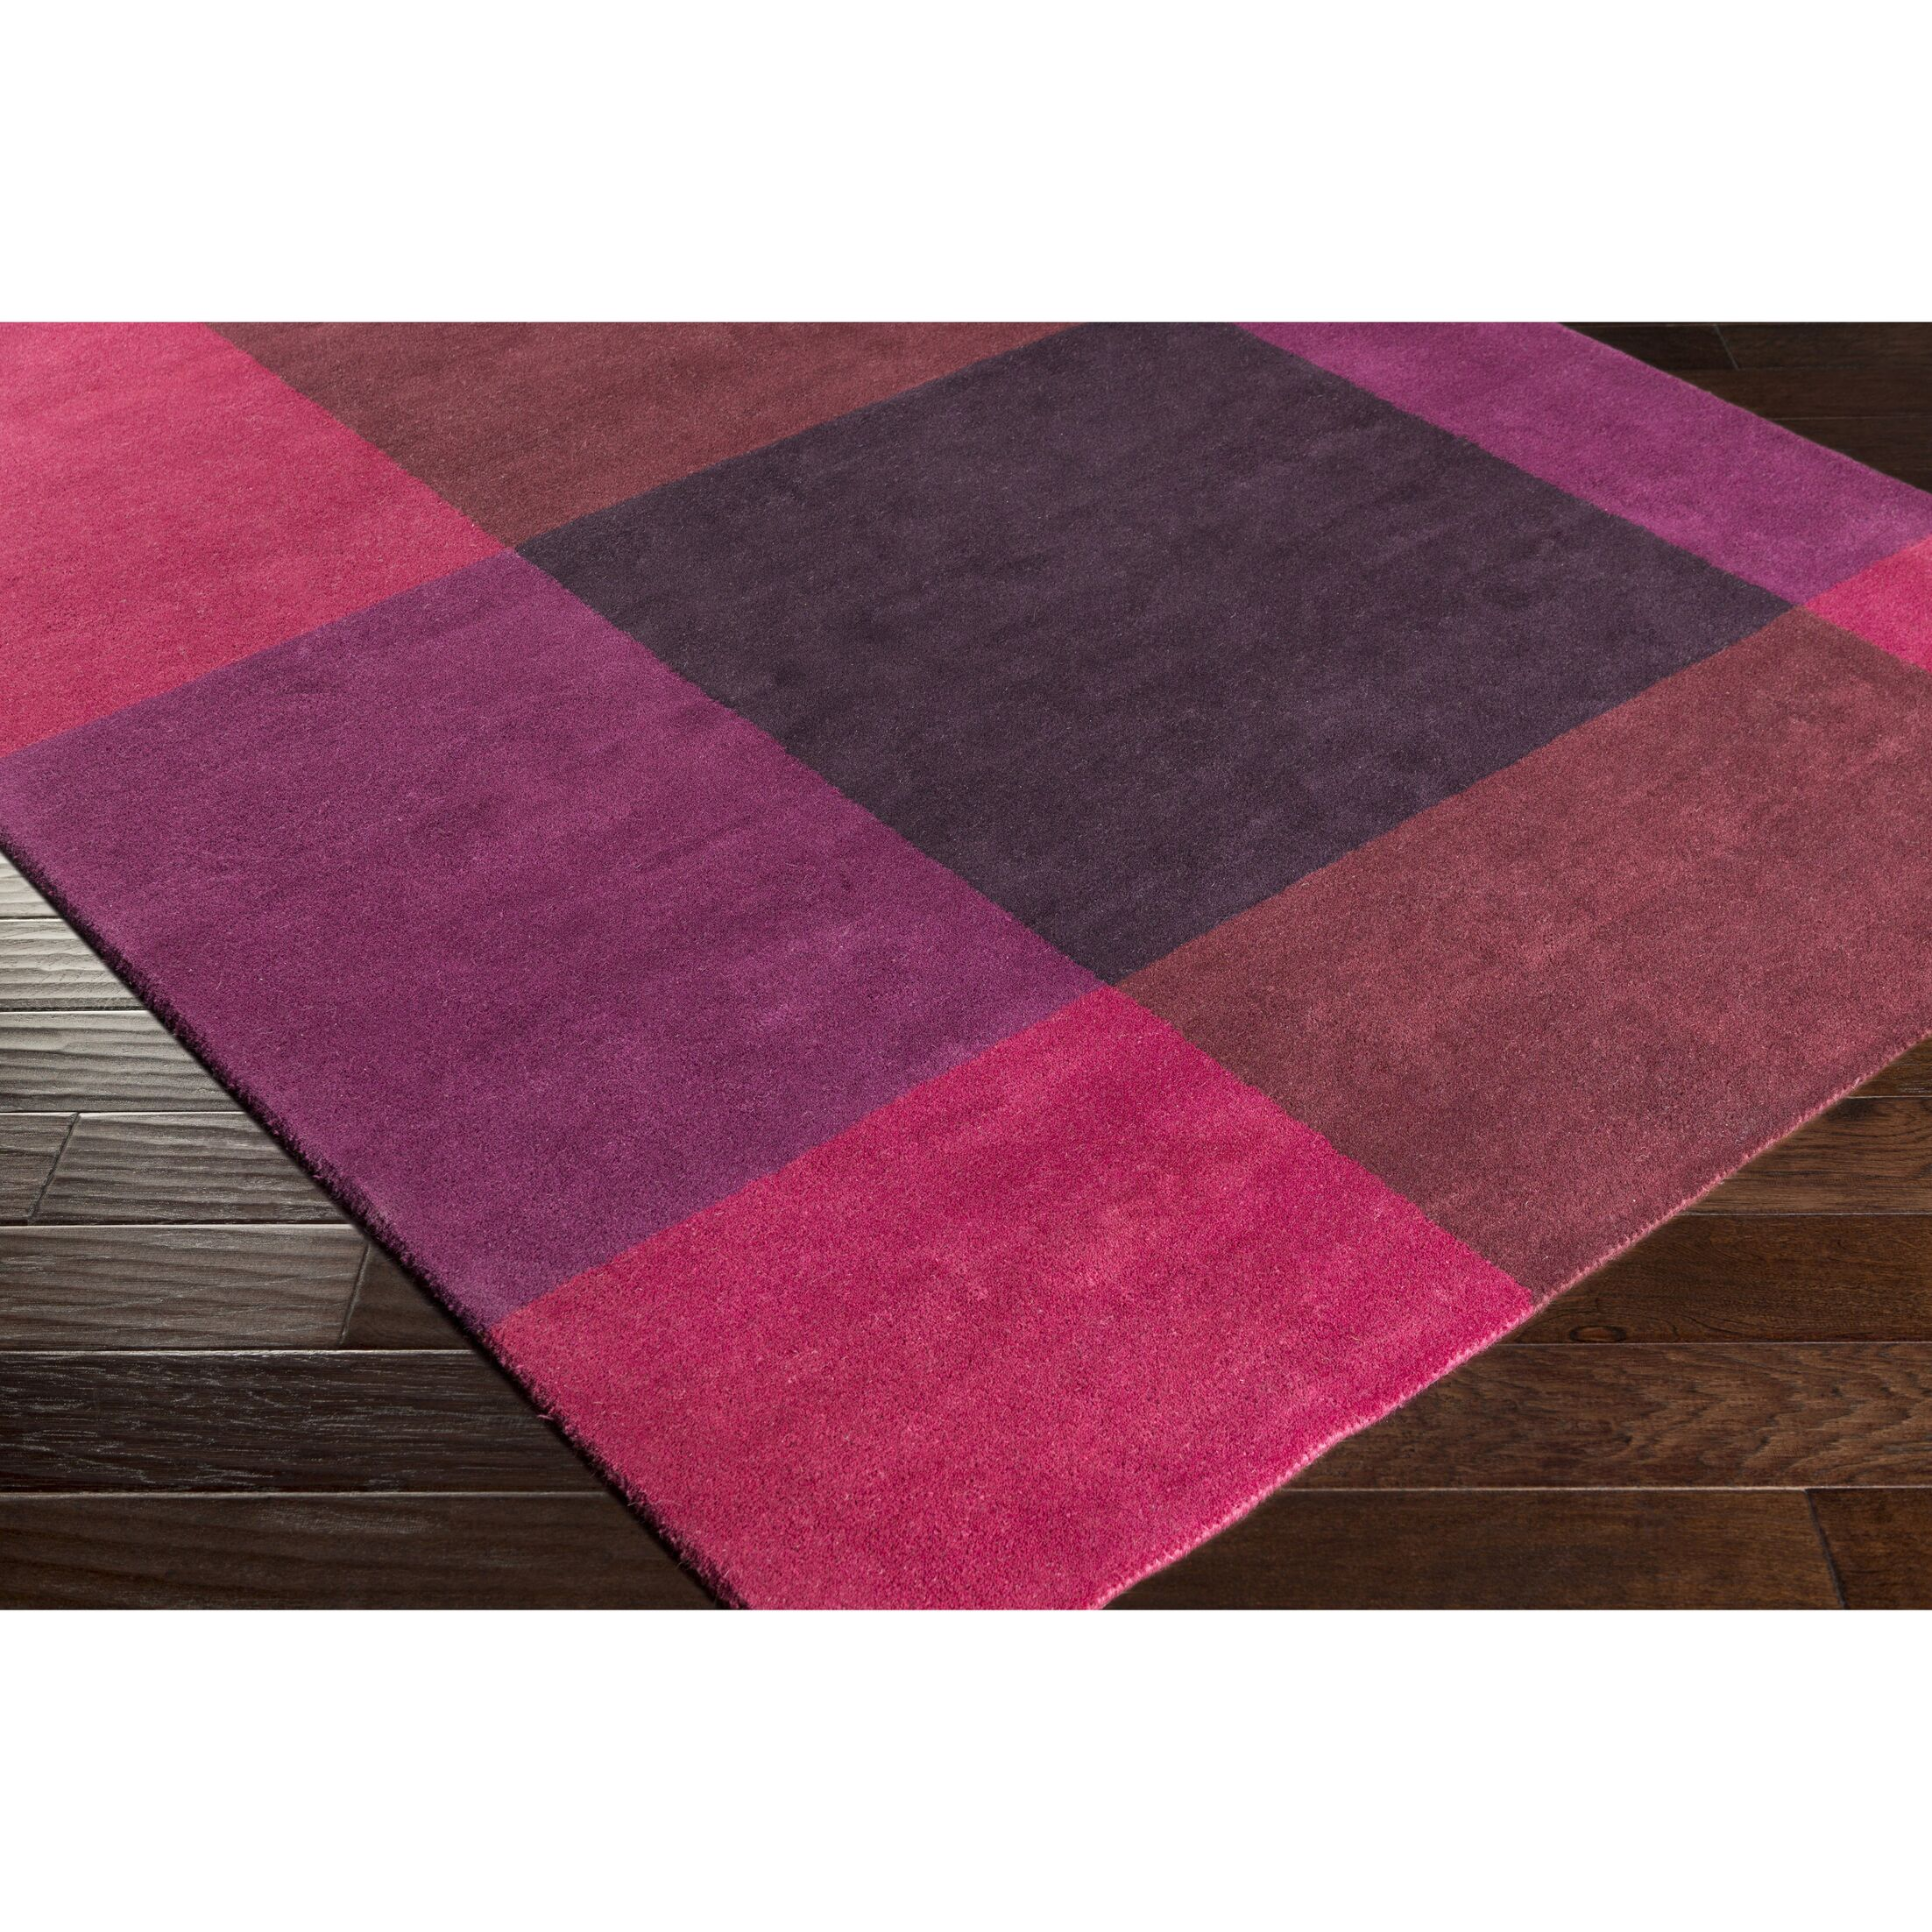 Mentzer Hand-Tufted Red/Purple Area Rug Rug Size: Rectangle 2' x 3'